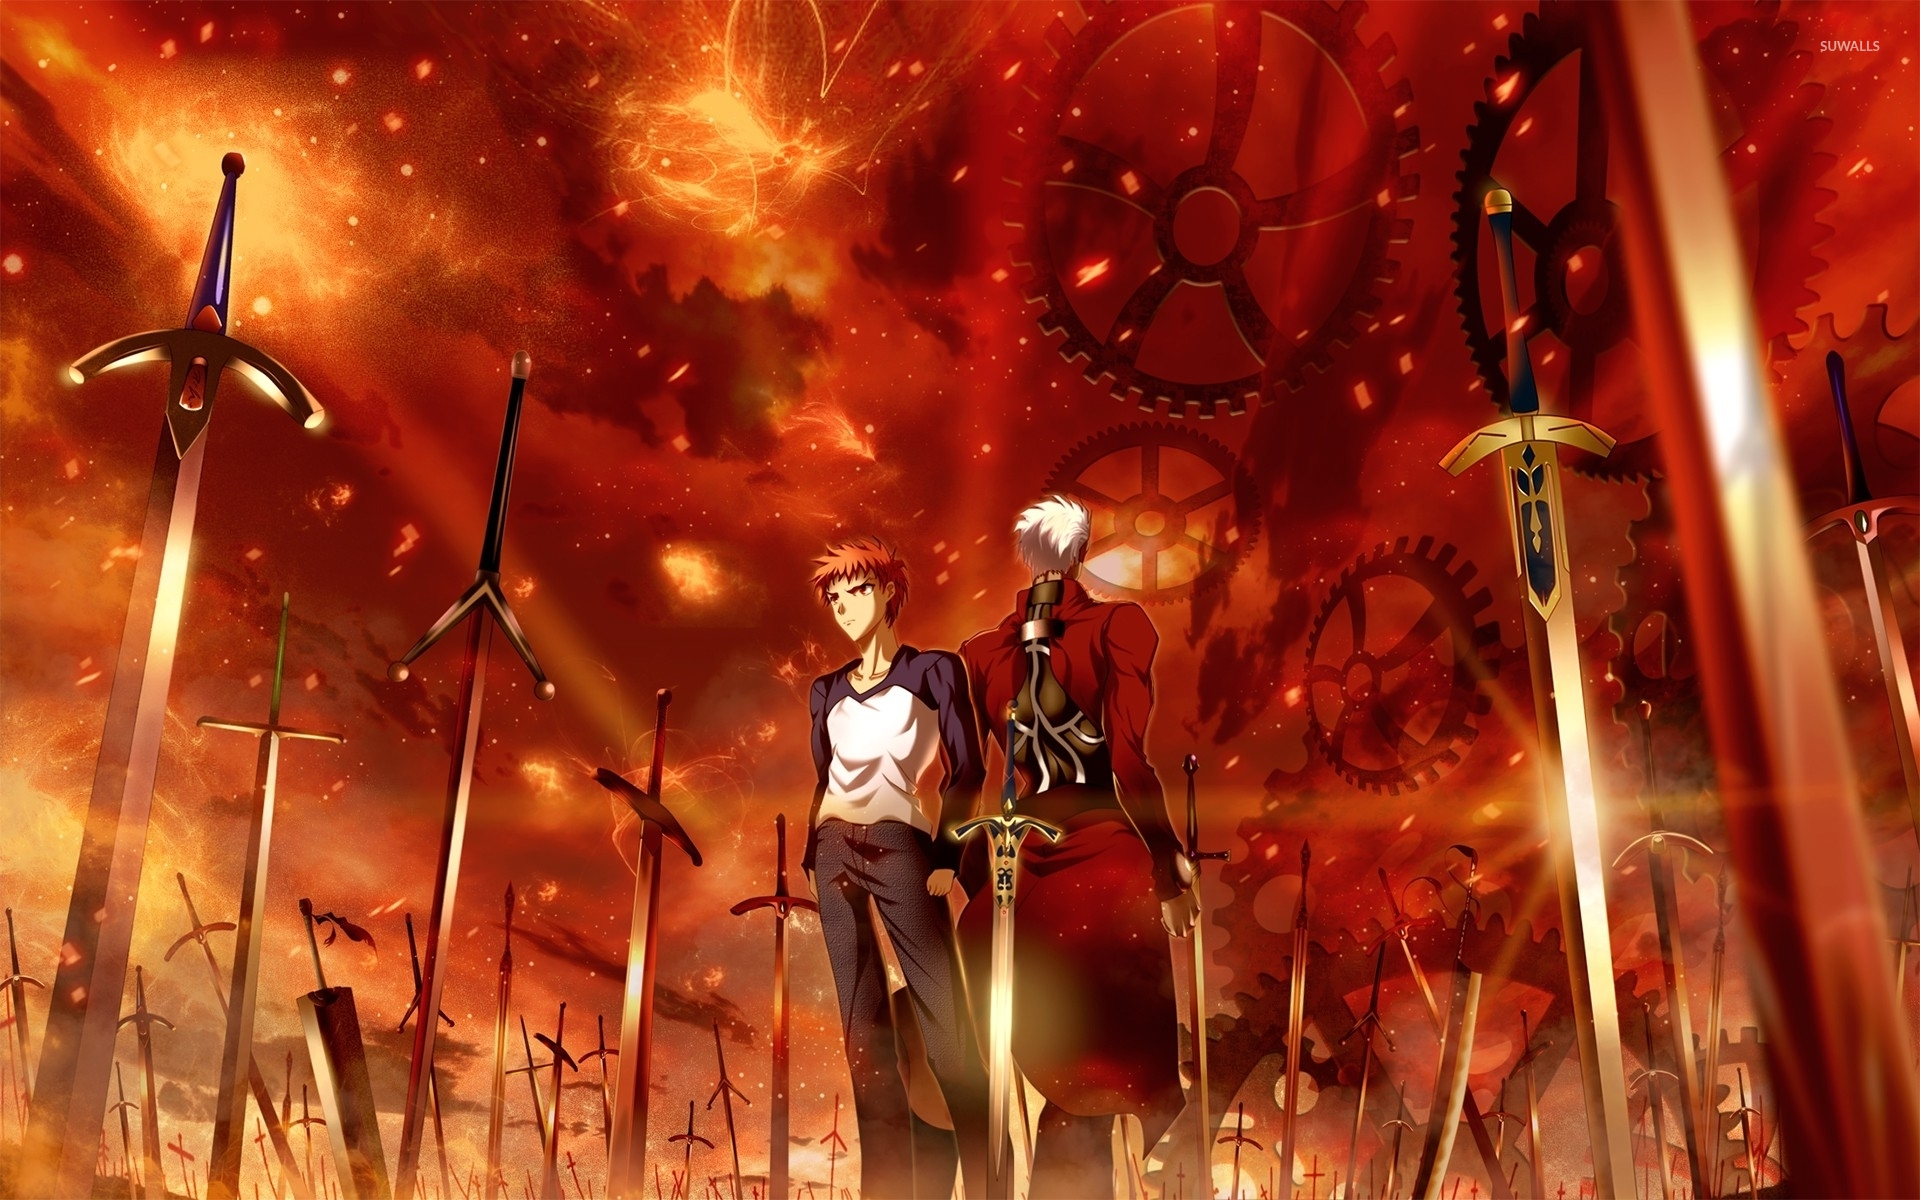 Free Download Fatestay Night 4 Wallpaper Anime Wallpapers 42797